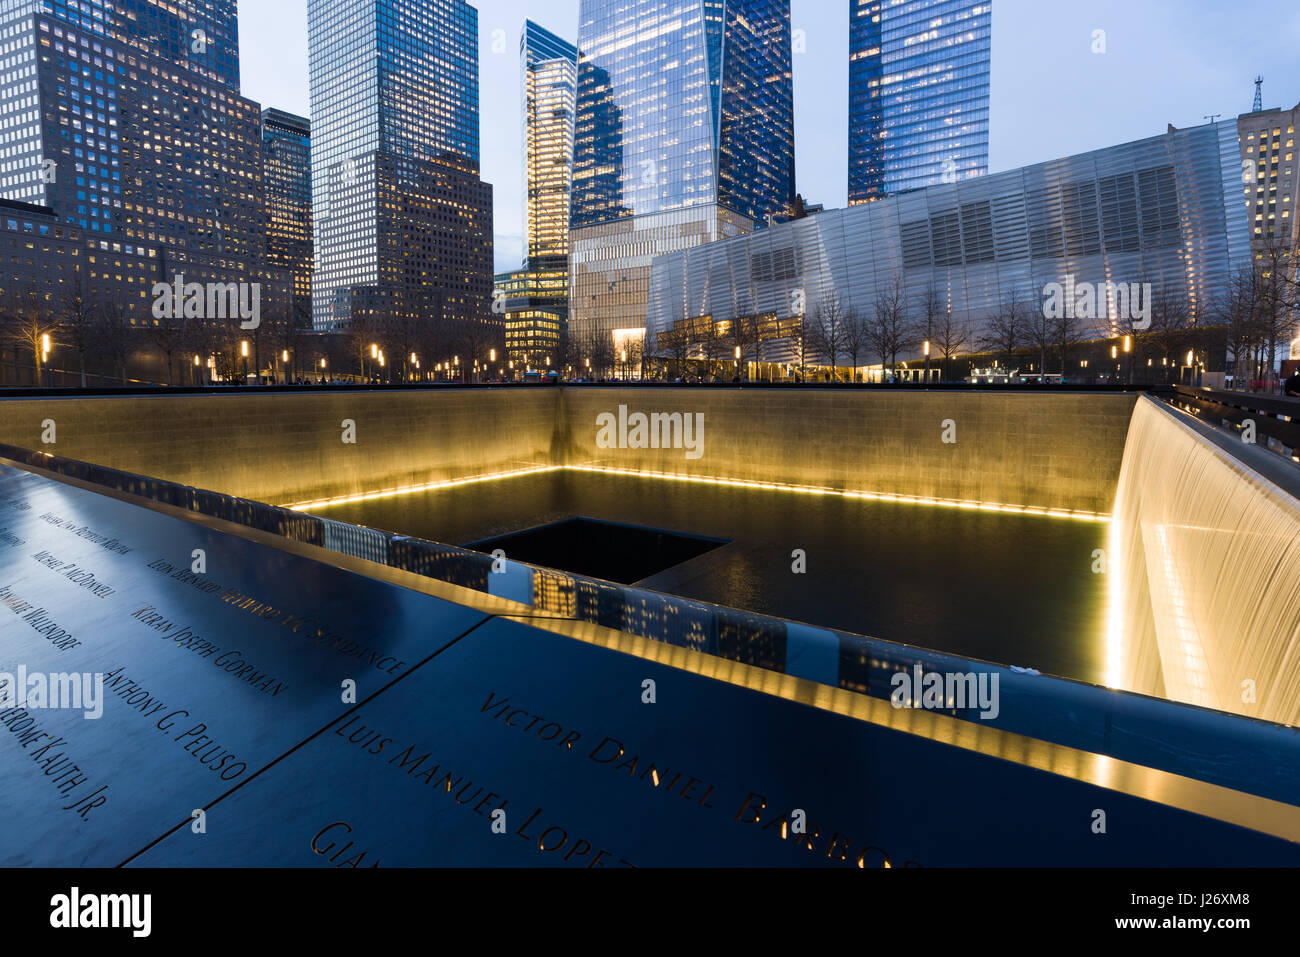 World Trade Centre And 9/11 Memorial Park Water Pool In Late Afternoon Light, New York, USA - Stock Image